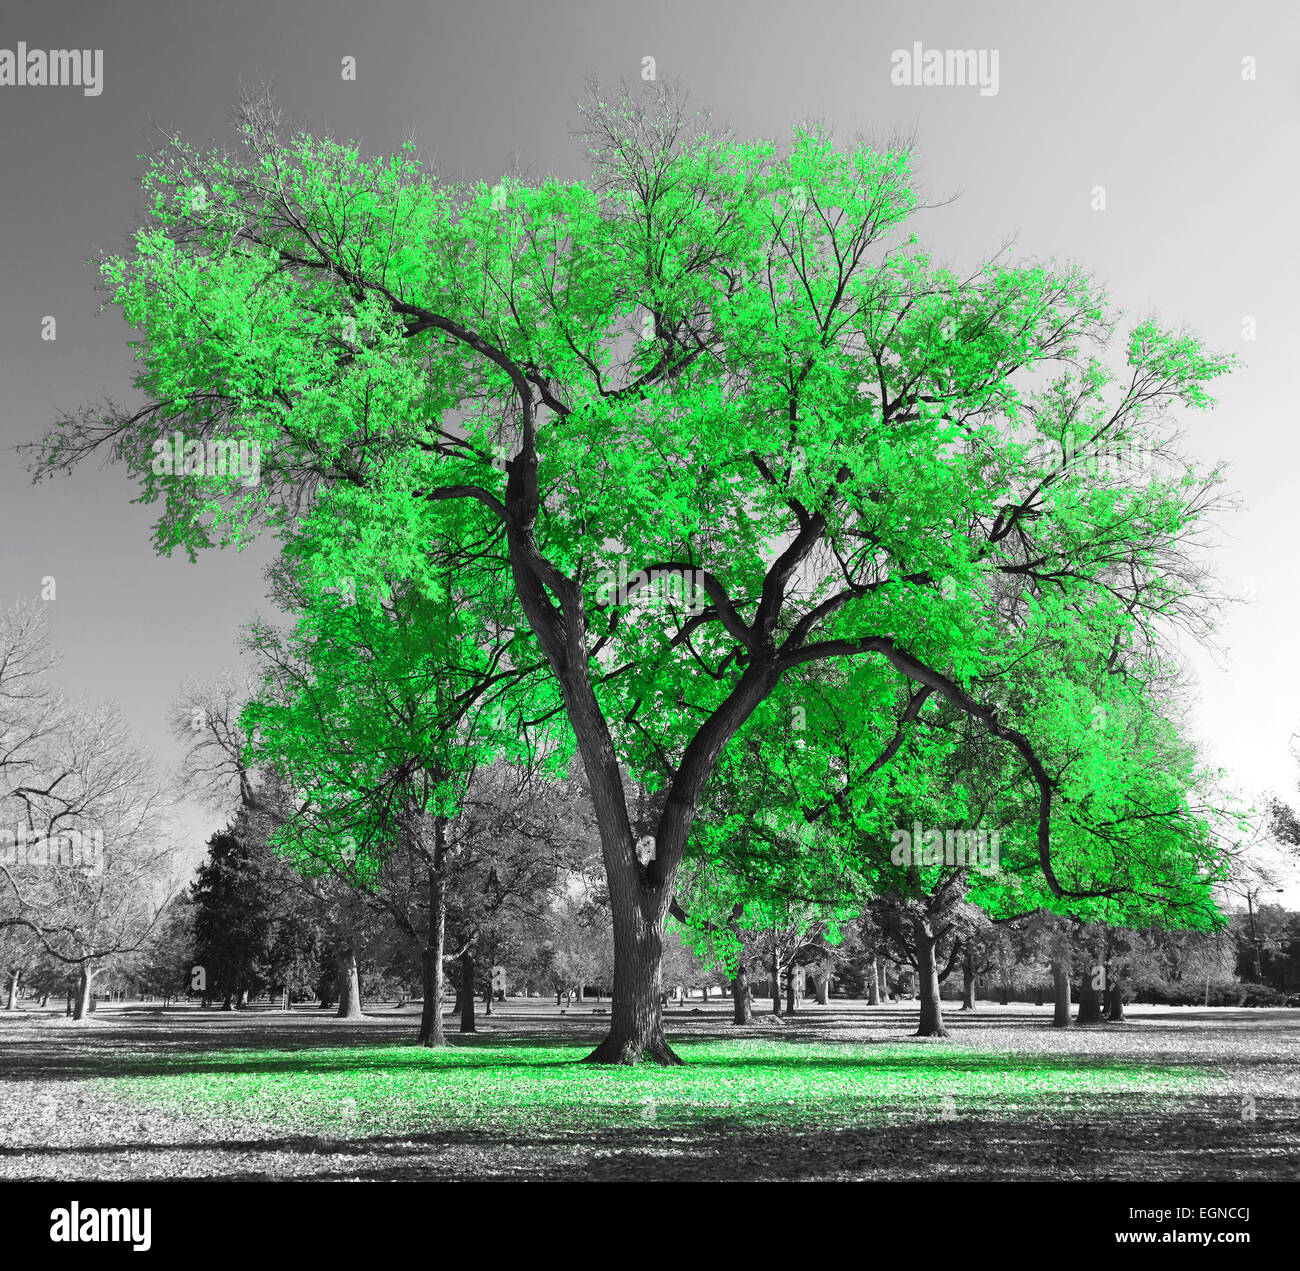 Big green tree in a black and white landscape - Stock Image